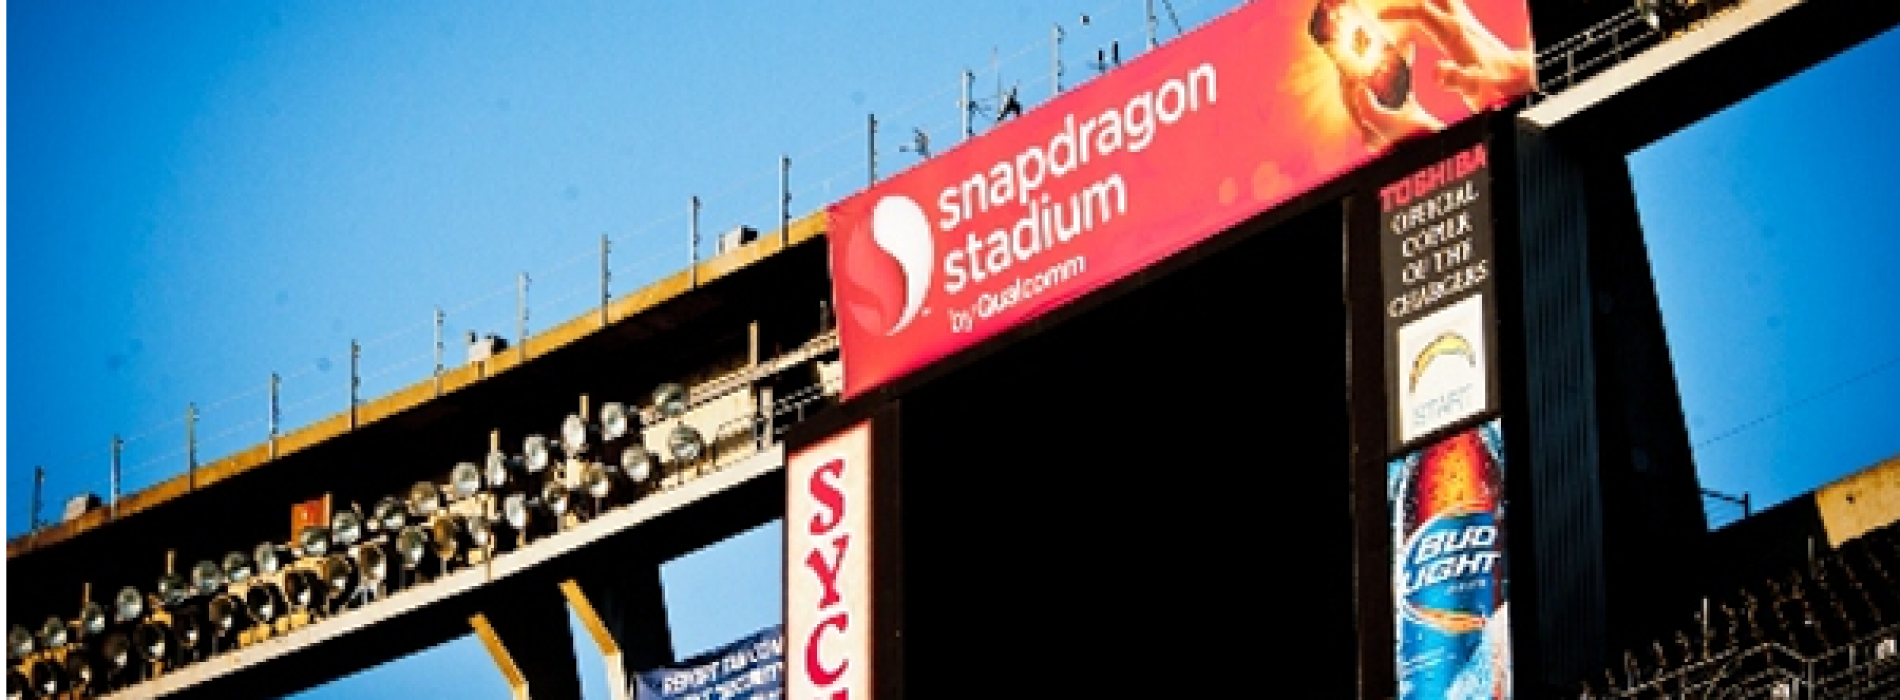 Qualcomm Stadium to become Snapdragon Stadium for 10-day period